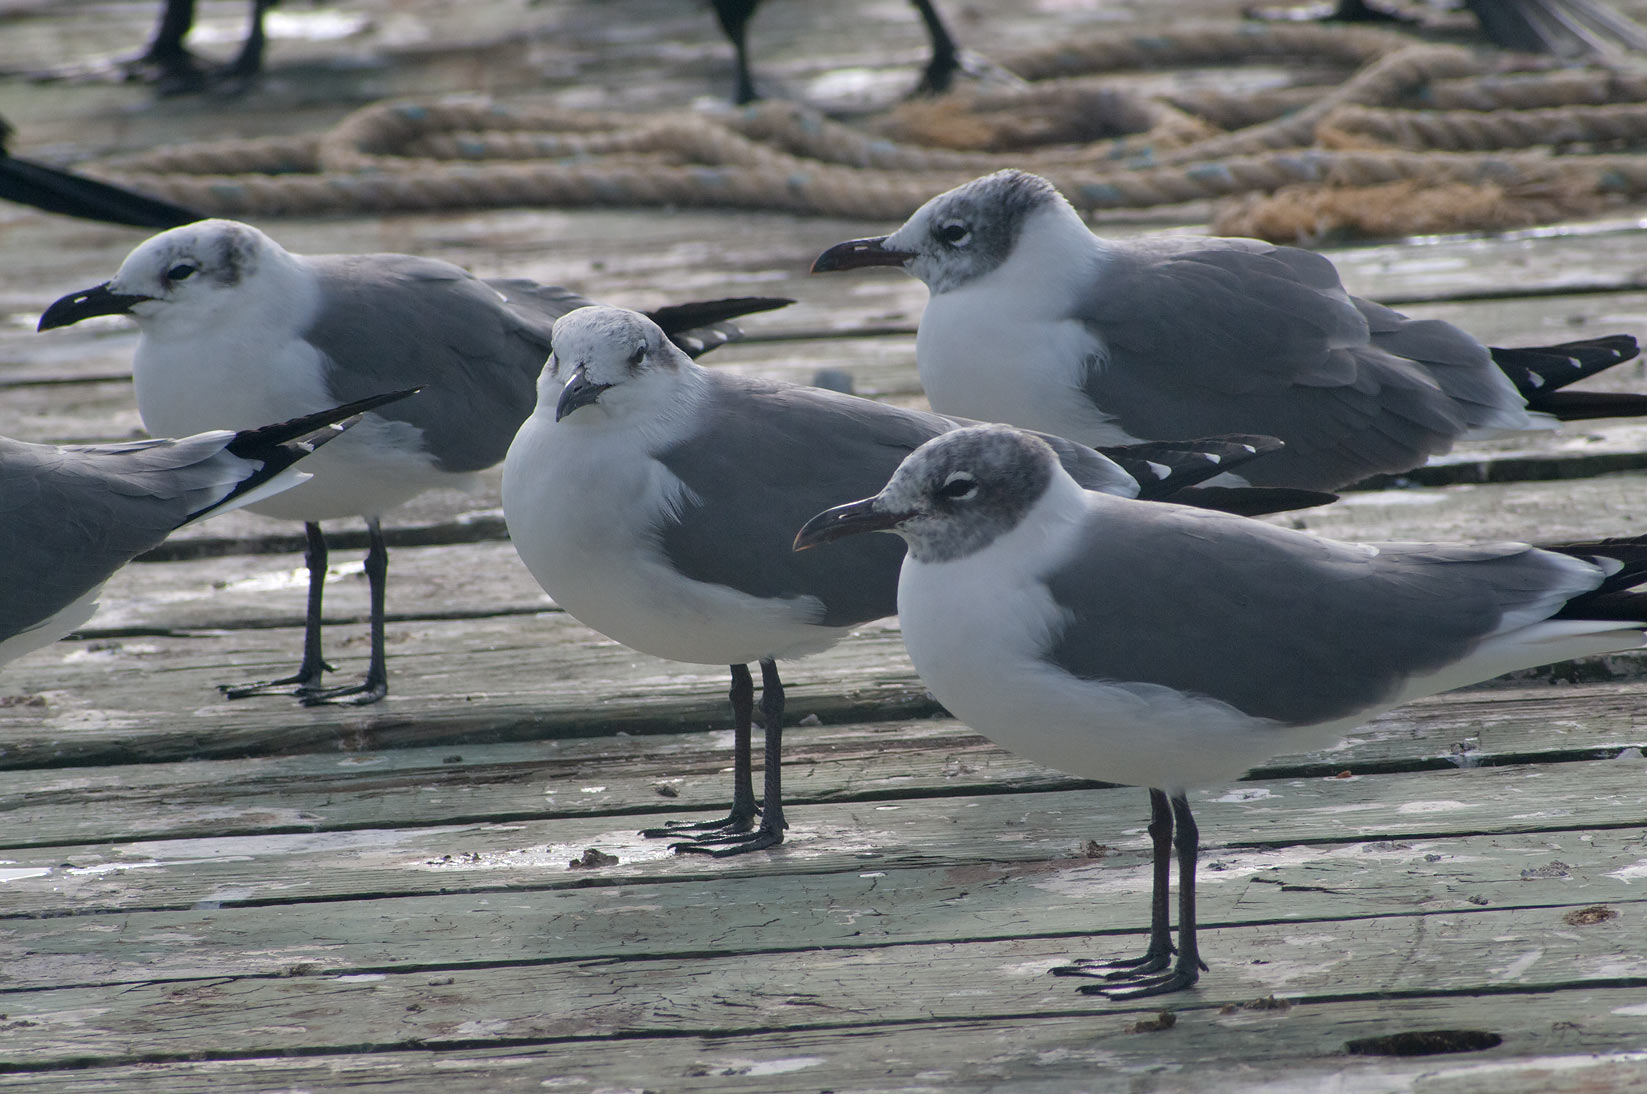 Galveston, Texas  - Gulls on Pier 21. Galveston, Texas